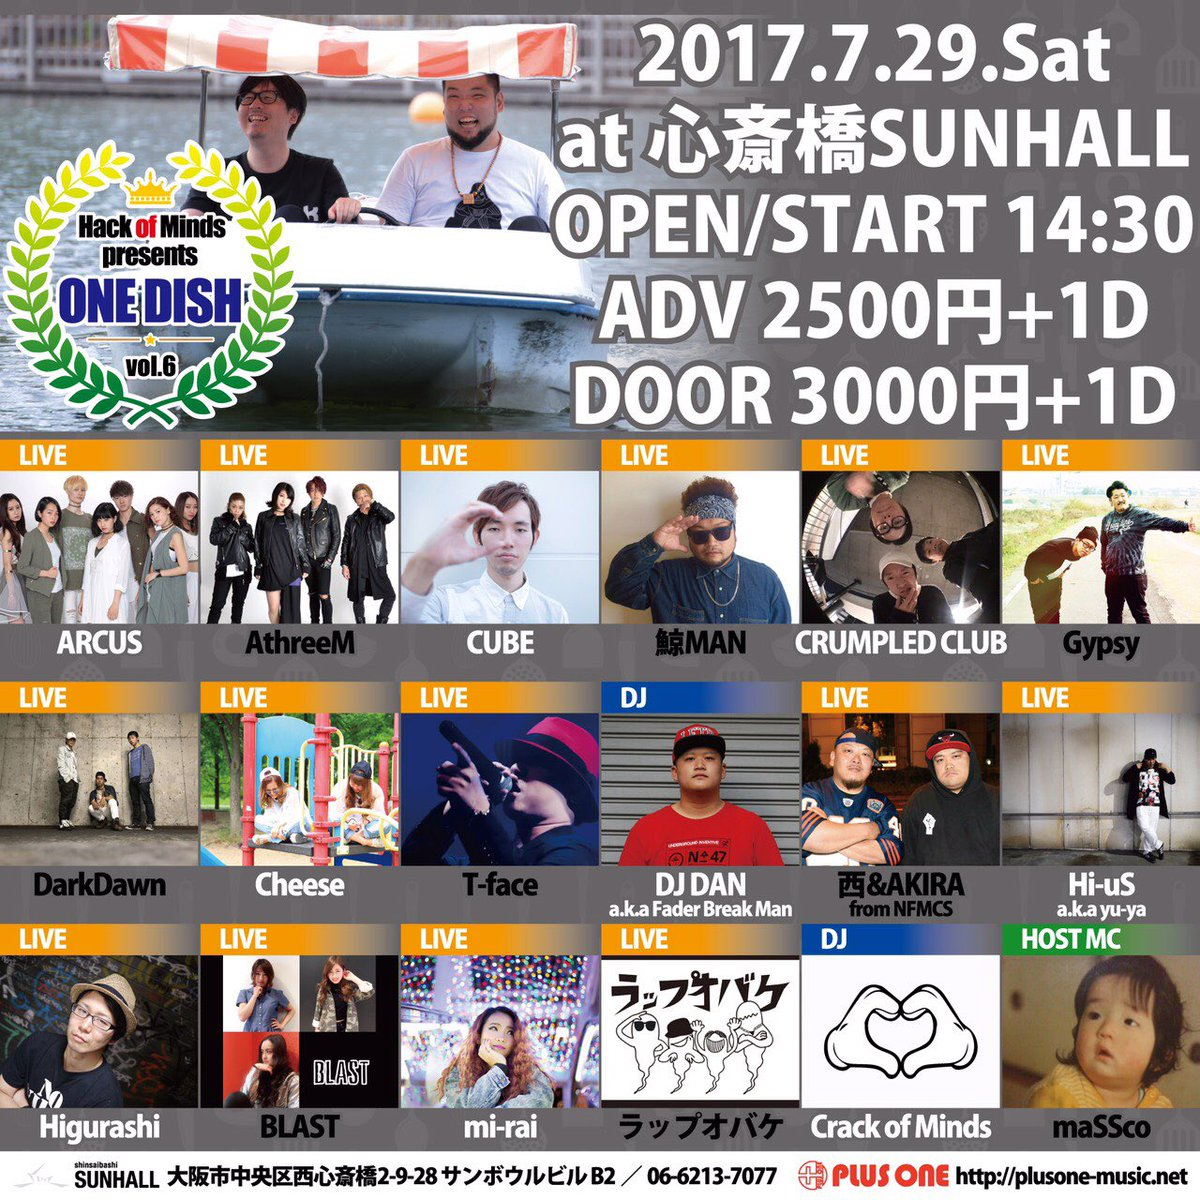 Hack of Minds presents ONE DISH vol.6